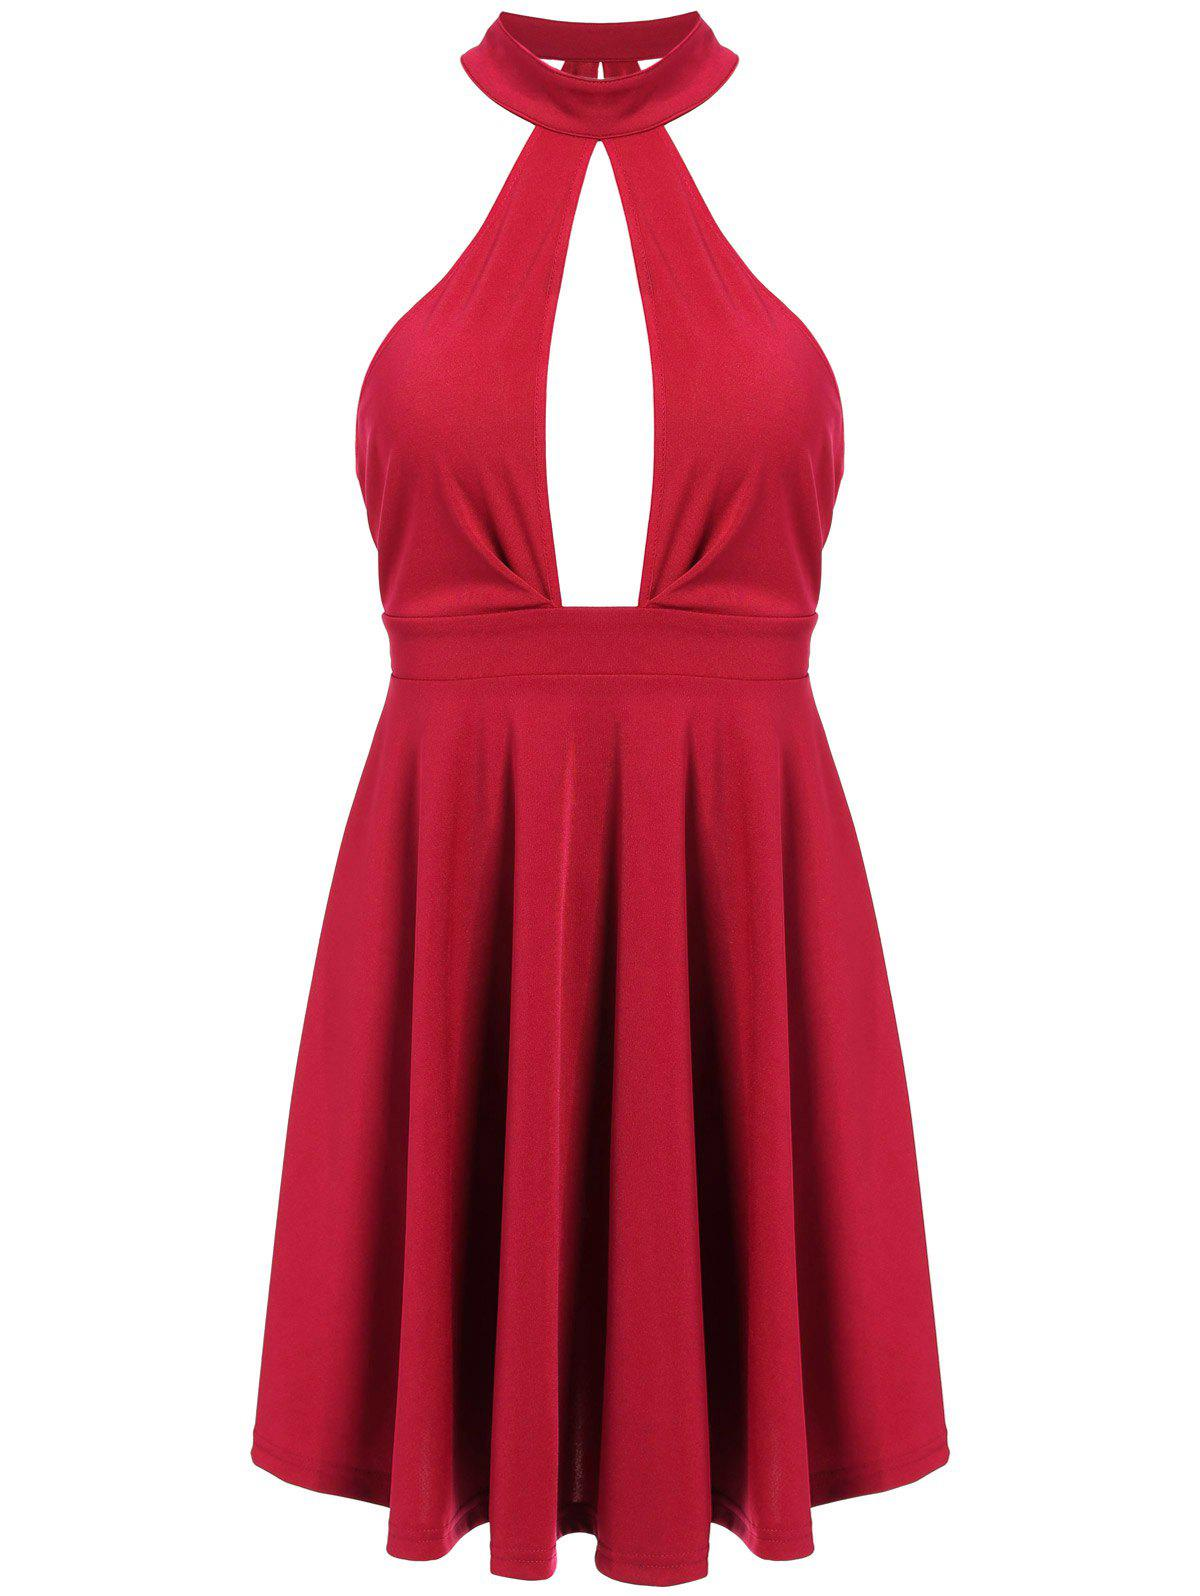 Low Back Keyhole Mini Cocktail Skater Dress - RED M